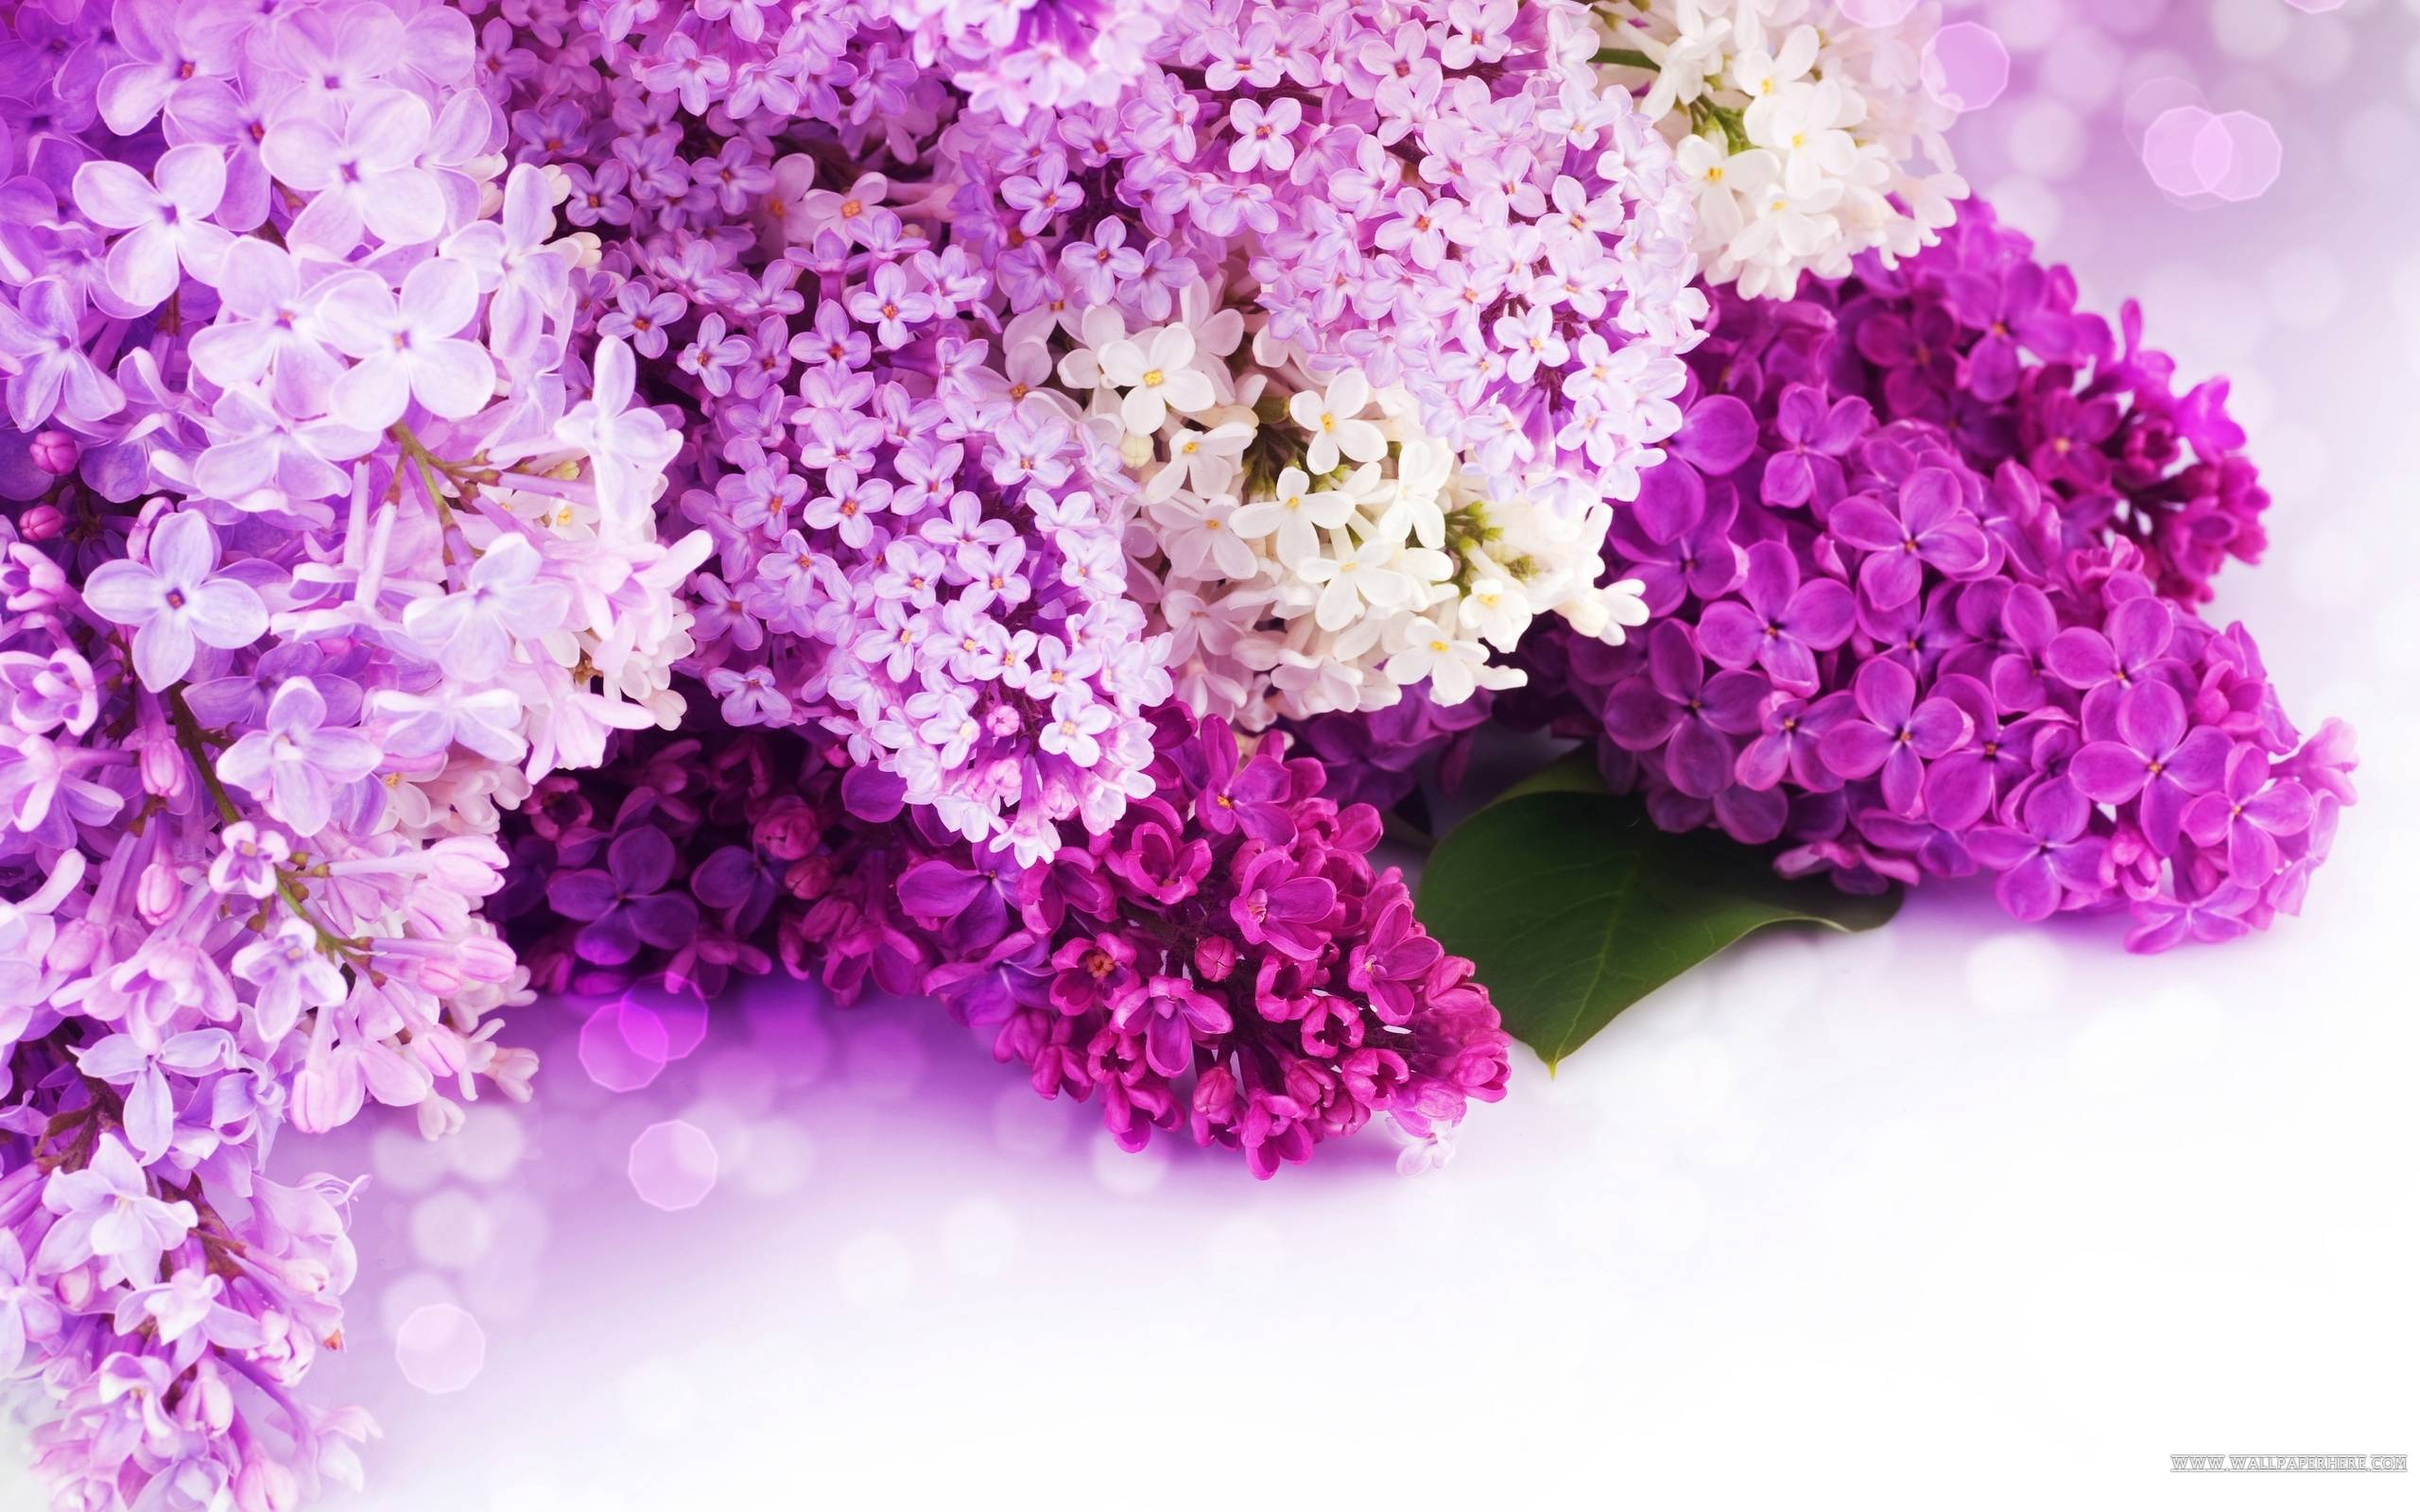 Purple Lilac Wallpaper : Desktop and mobile wallpaper : Wallippo